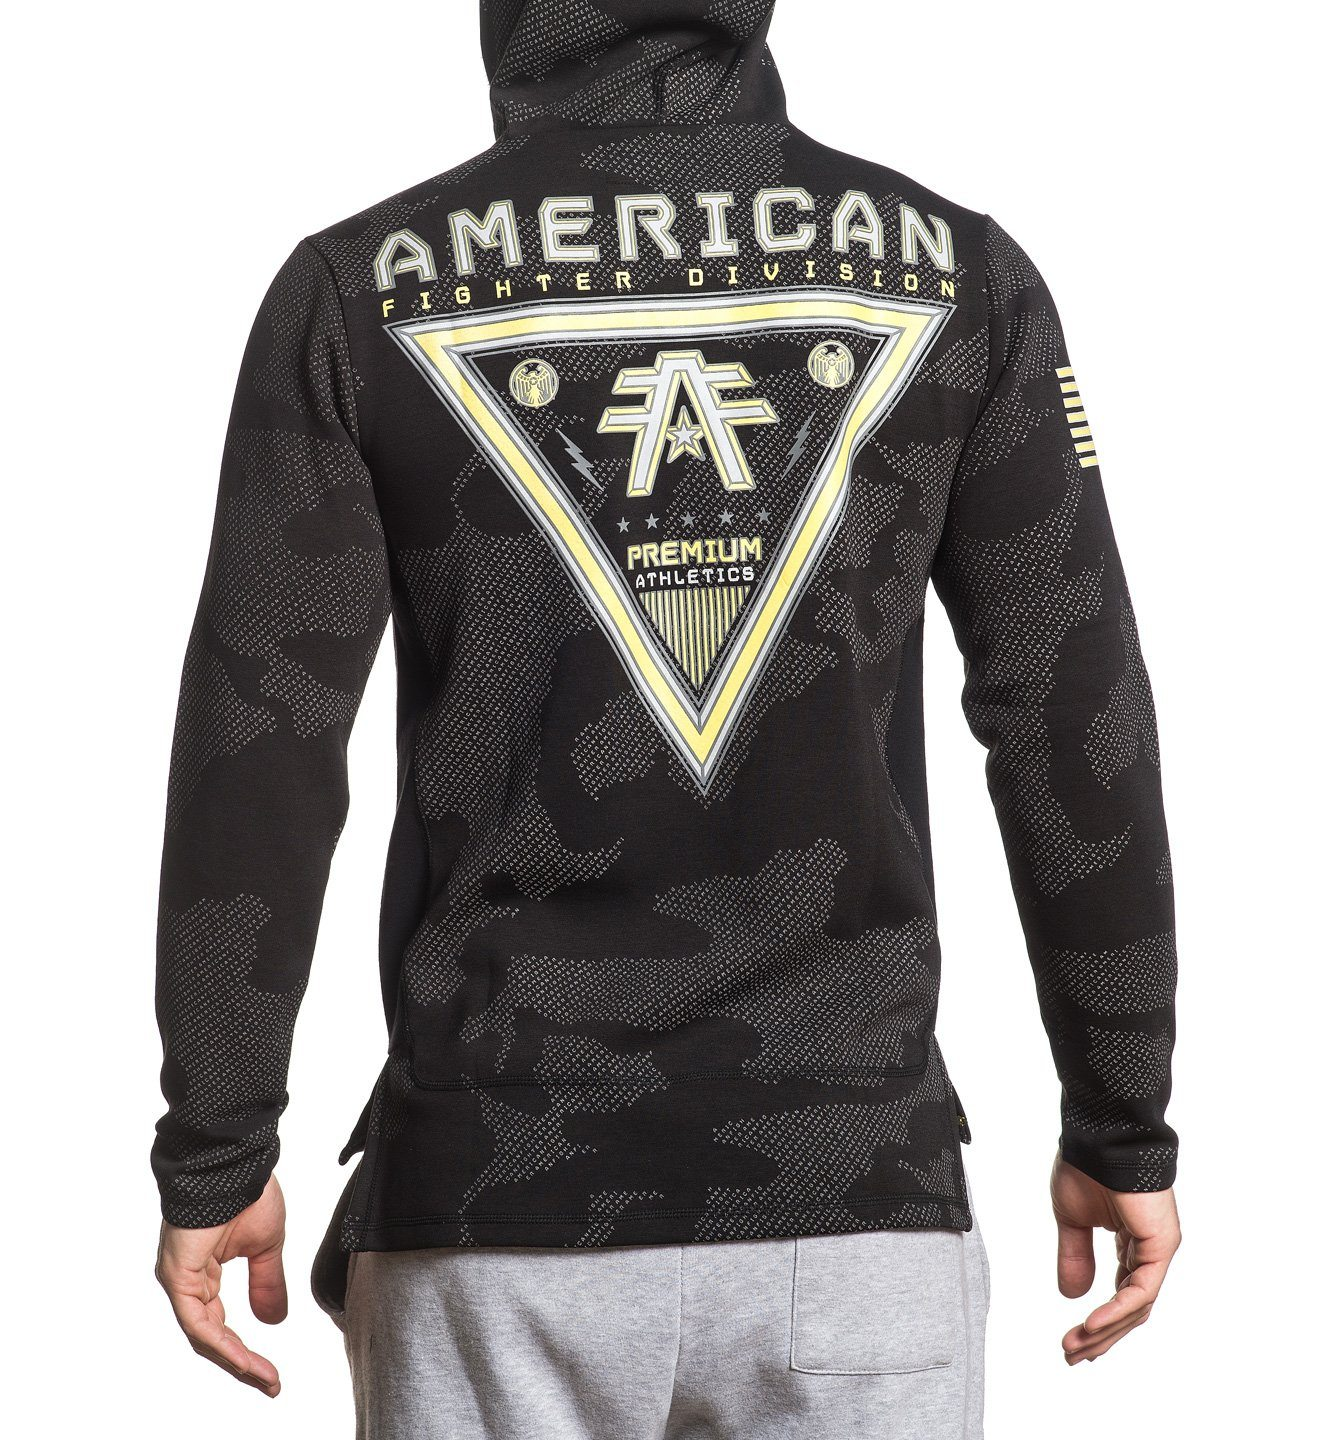 Revenge P/O Hood - Mens Hooded Sweatshirts - American Fighter